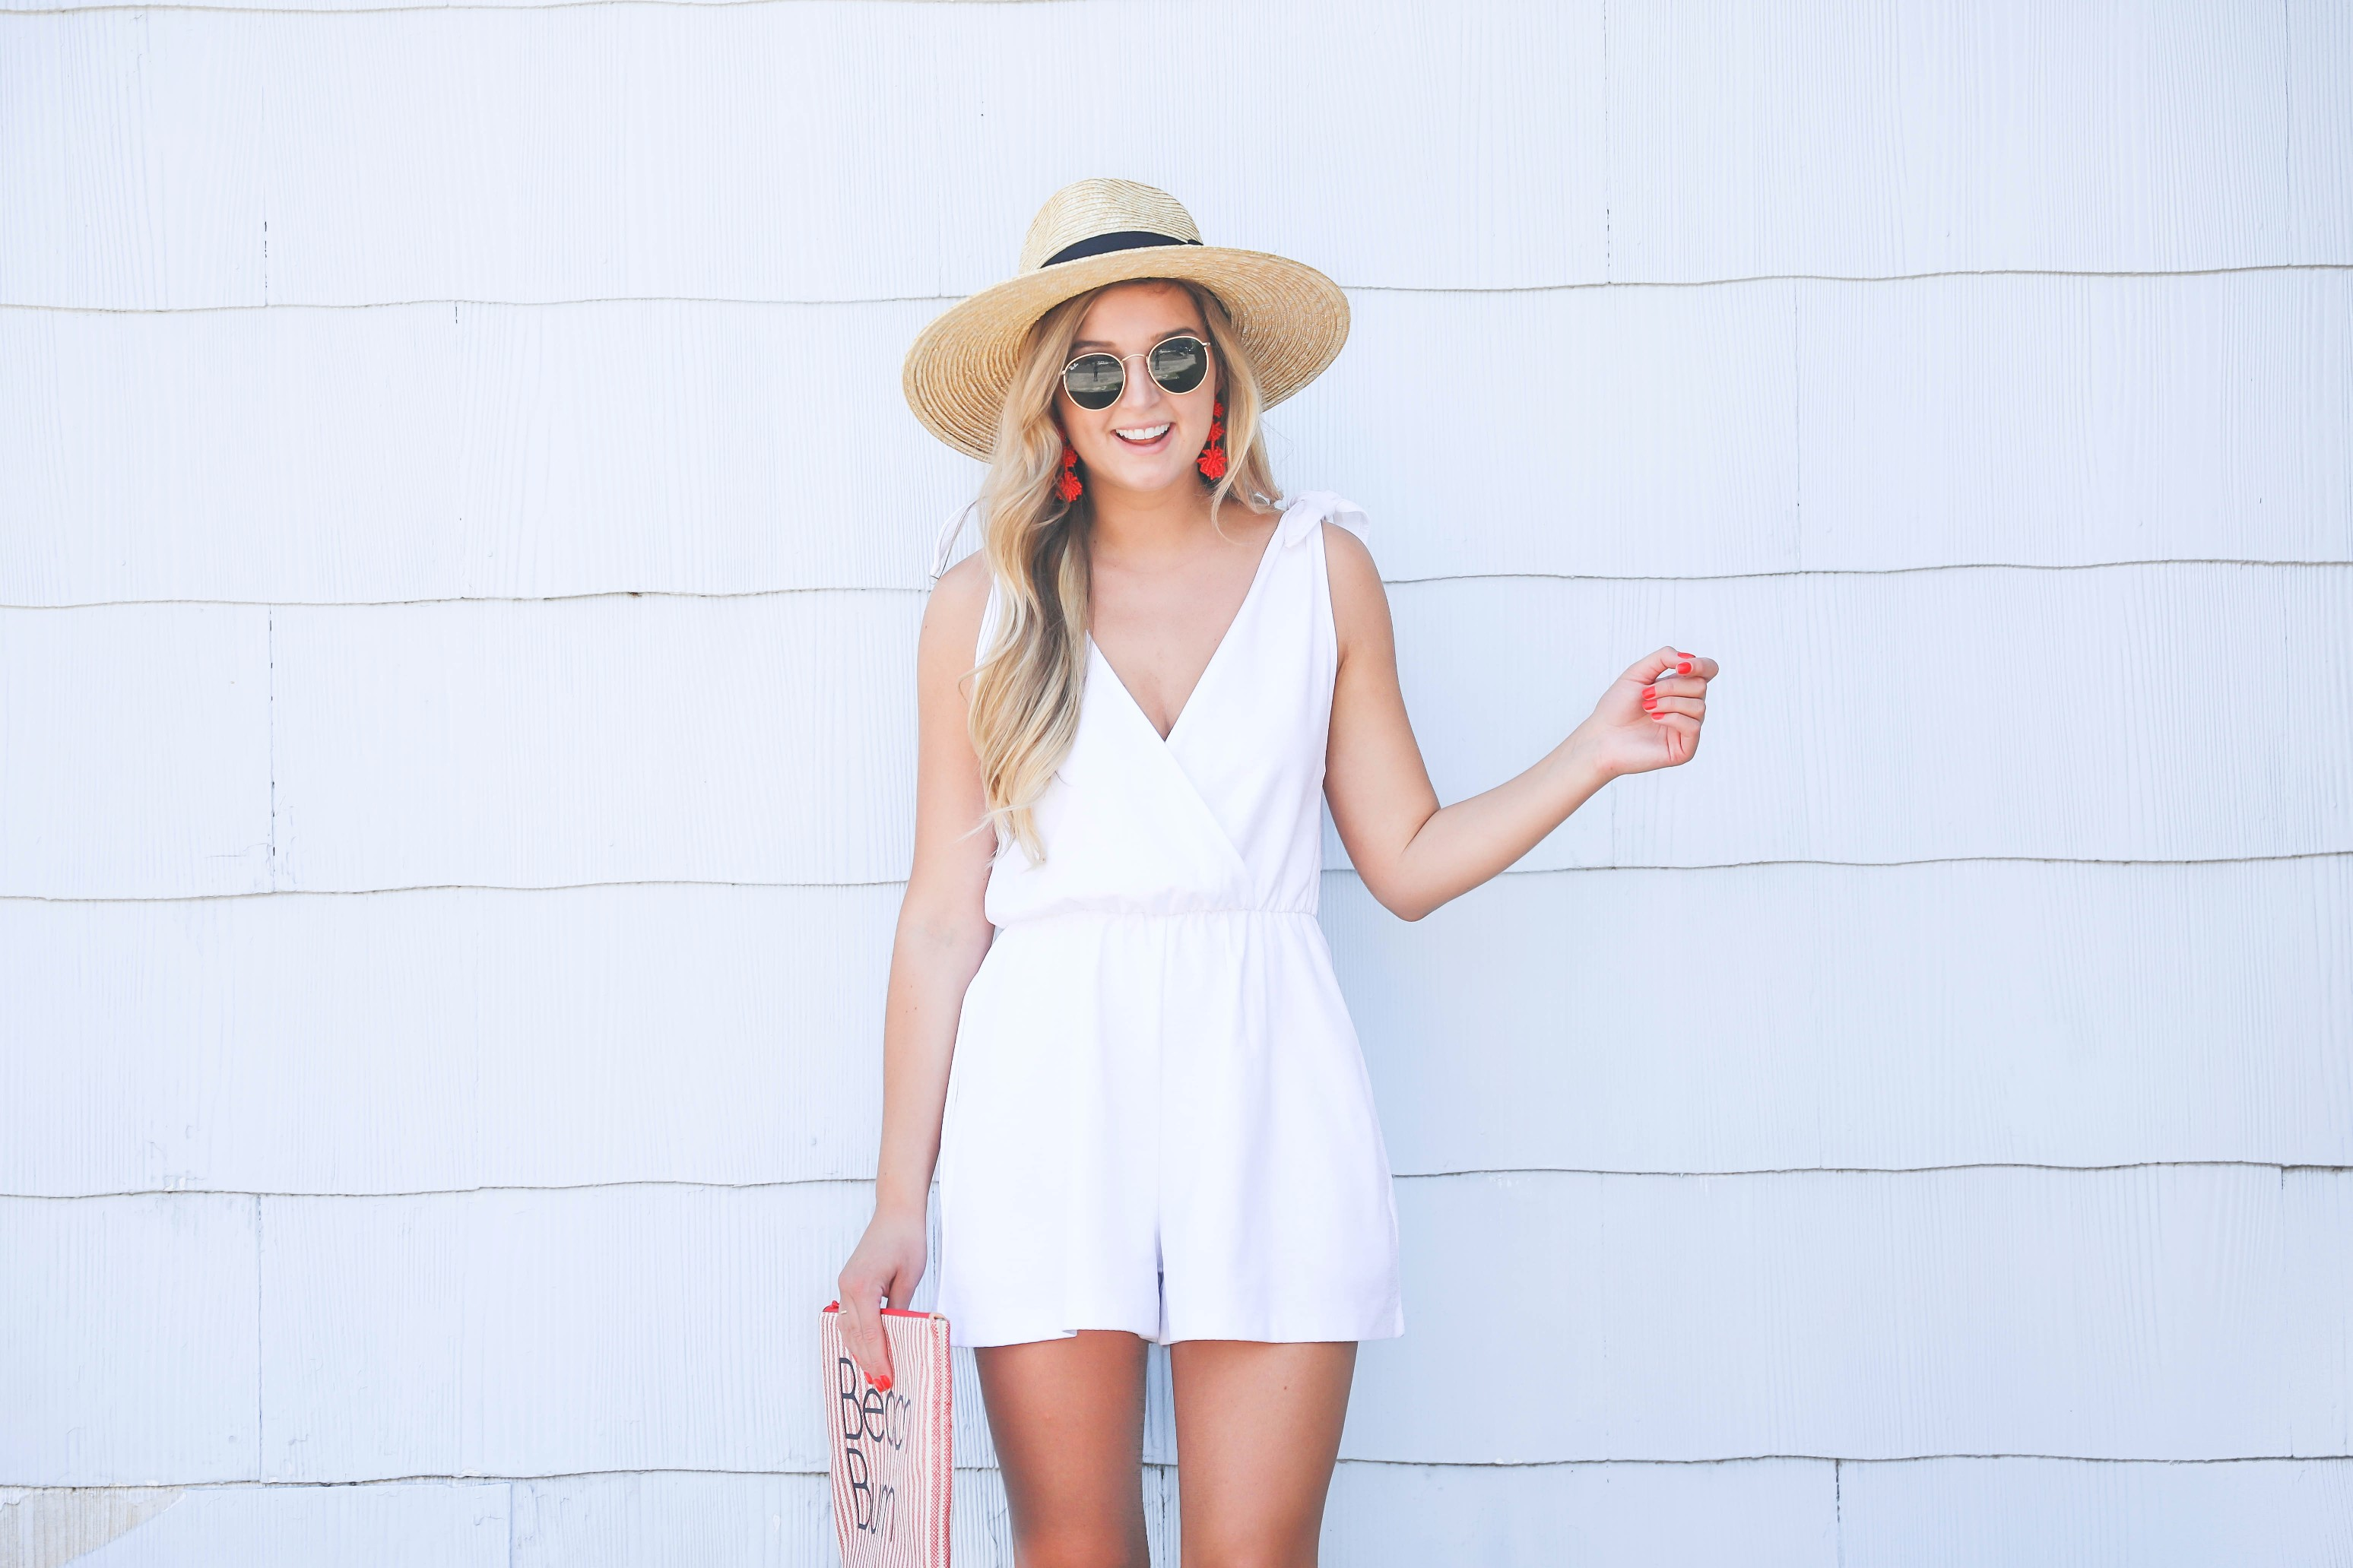 White romper for summer! This romper has a cute plunging neckline and ties on the shoulders. I love that it is linen because it won't wrinkle as easily! This romper and red statement earrings will be perfect for the Fourth of July! Paired with my cute nude heels and wide brimmed hat fashion! Details on fashion blog daily dose of charm by lauren lindmark